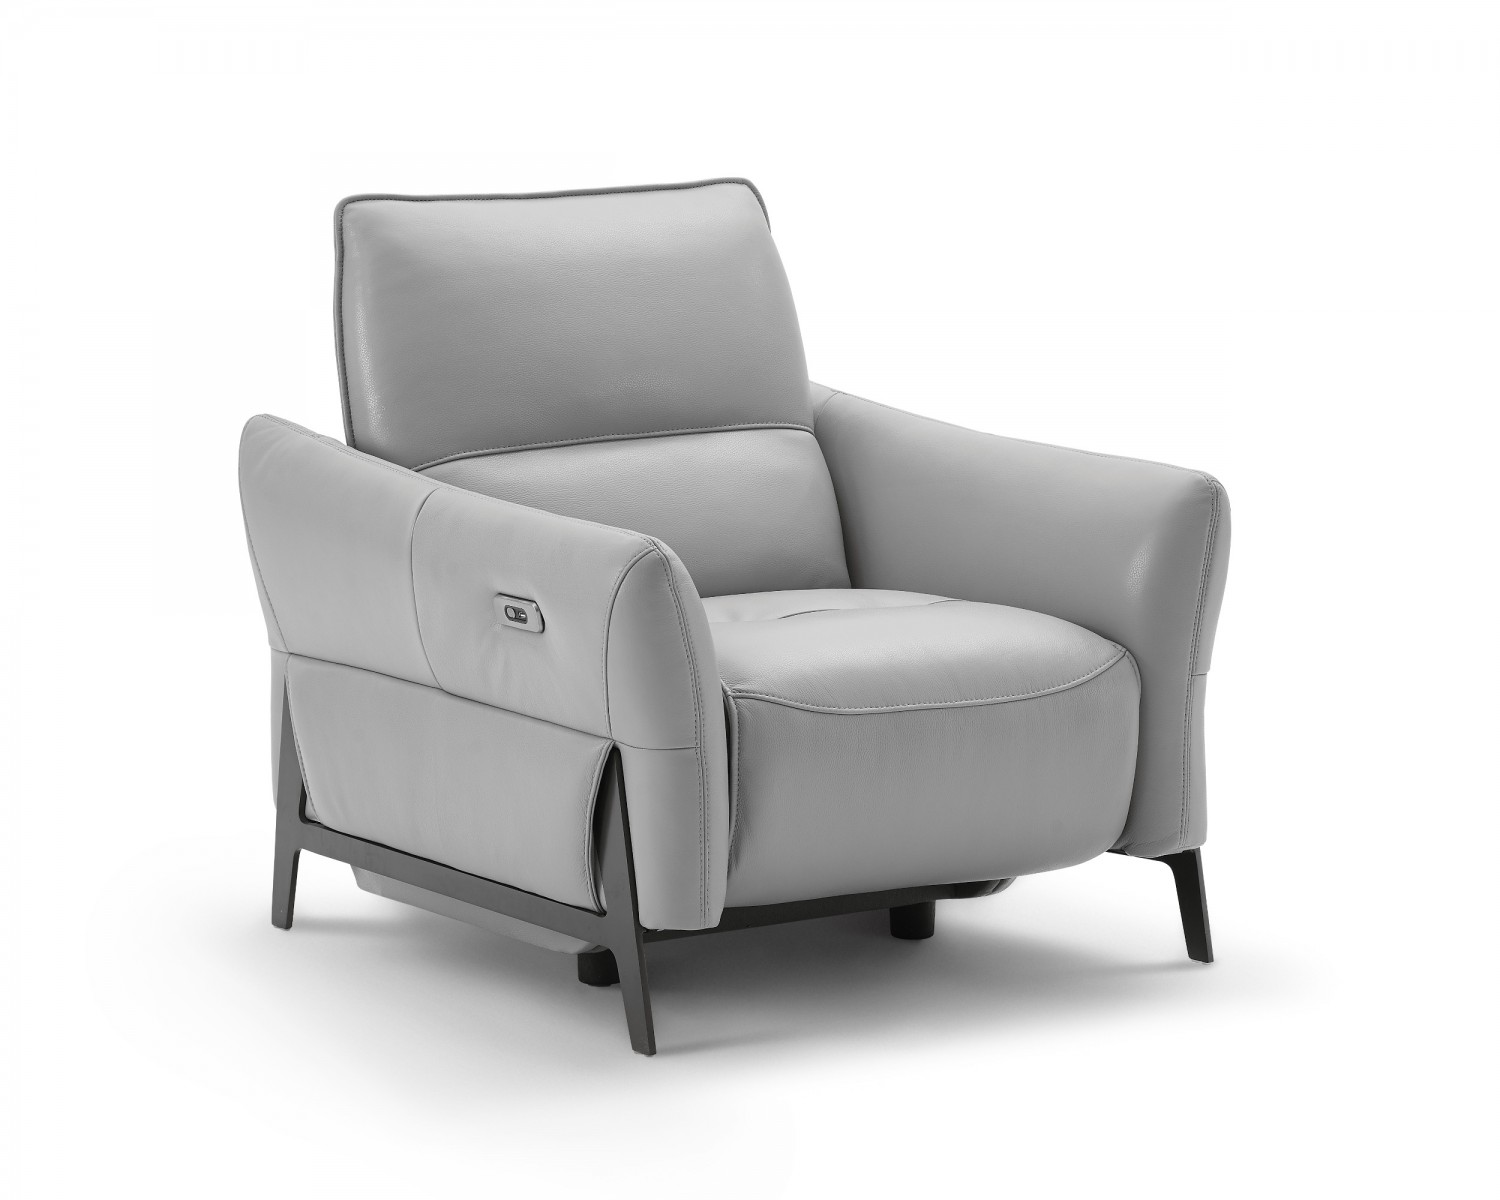 Silas Modern Recliner Armchair | Creative Furniture, $2,000.00, Creative  Furniture, Light Grey